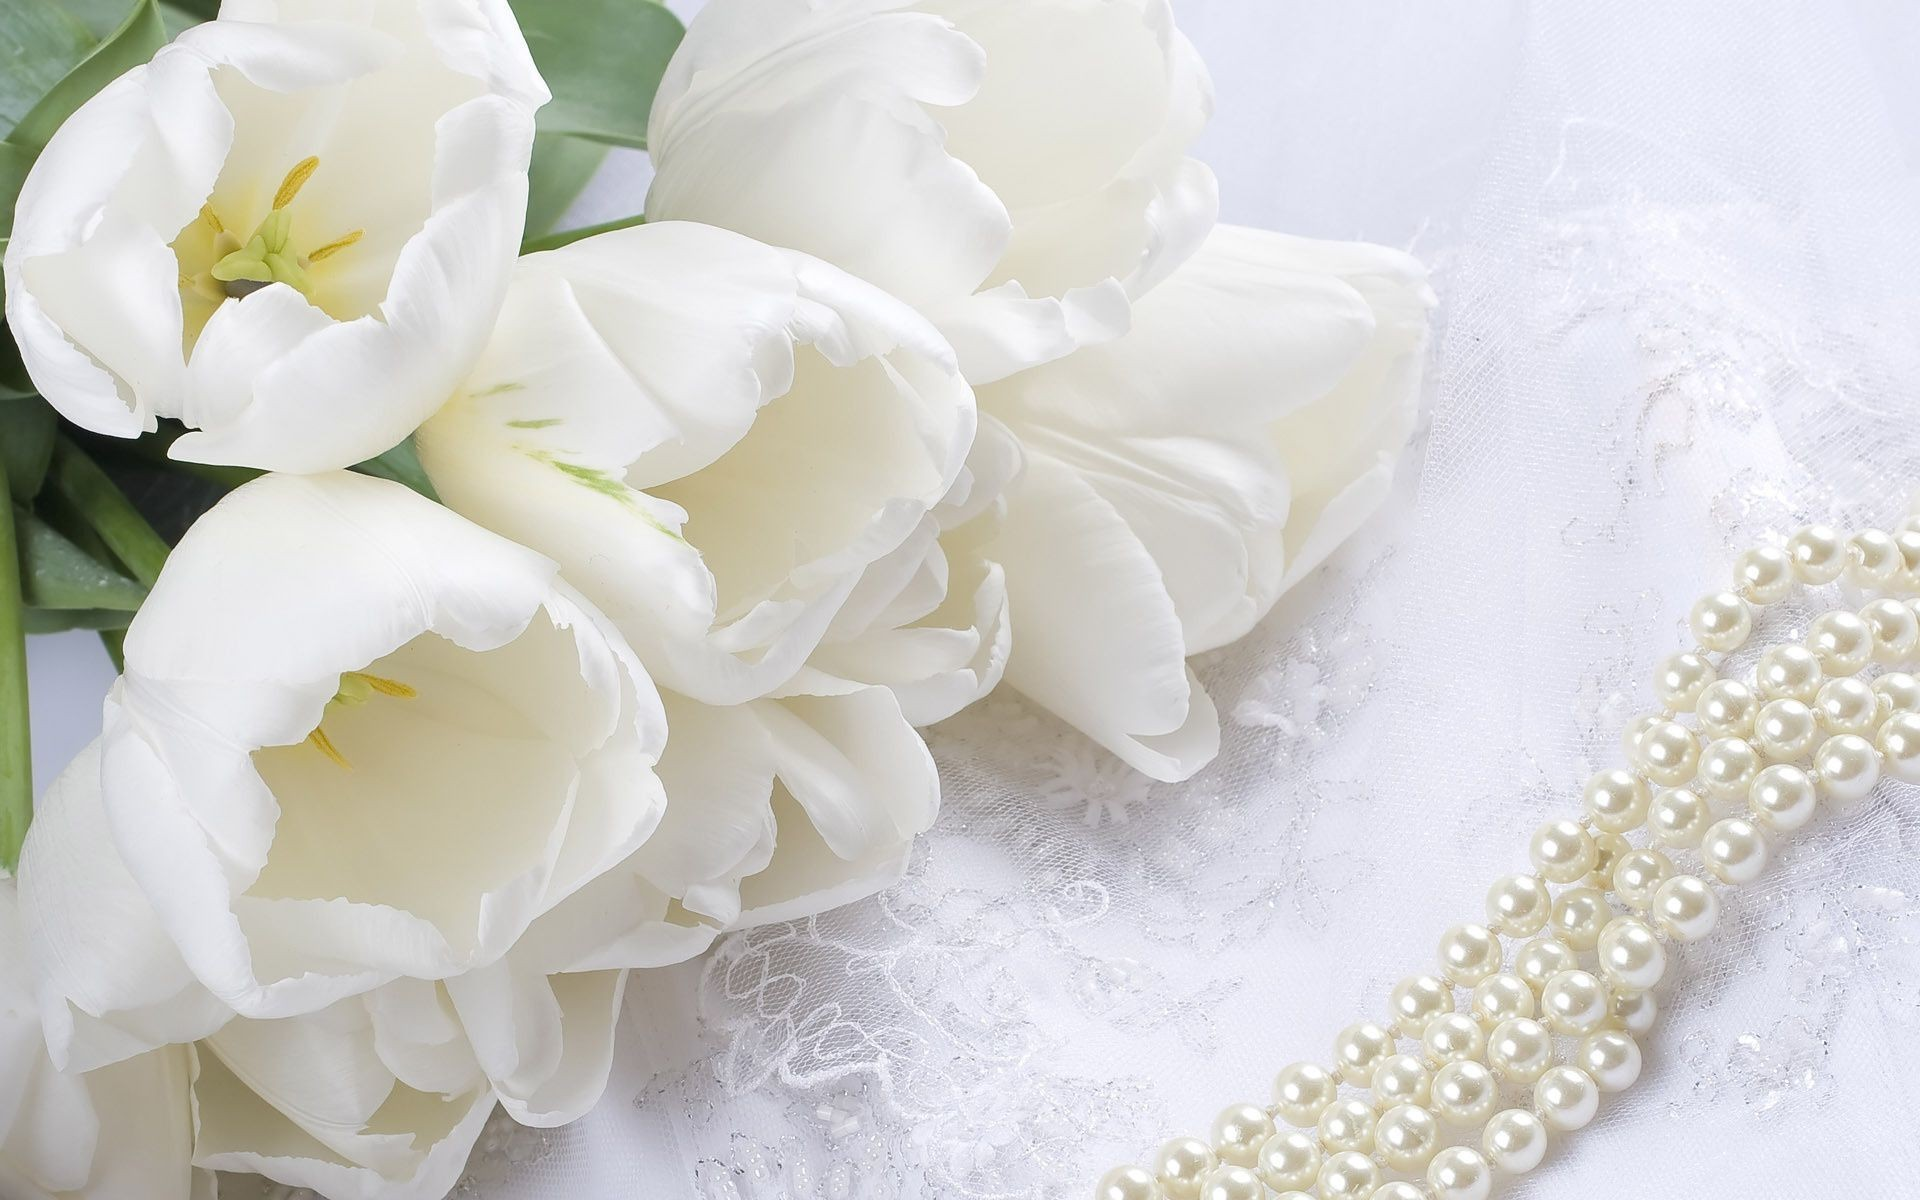 Res: 1920x1200, Flowers pearls white lace tulips bouquet beads. Android wallpapers for free.